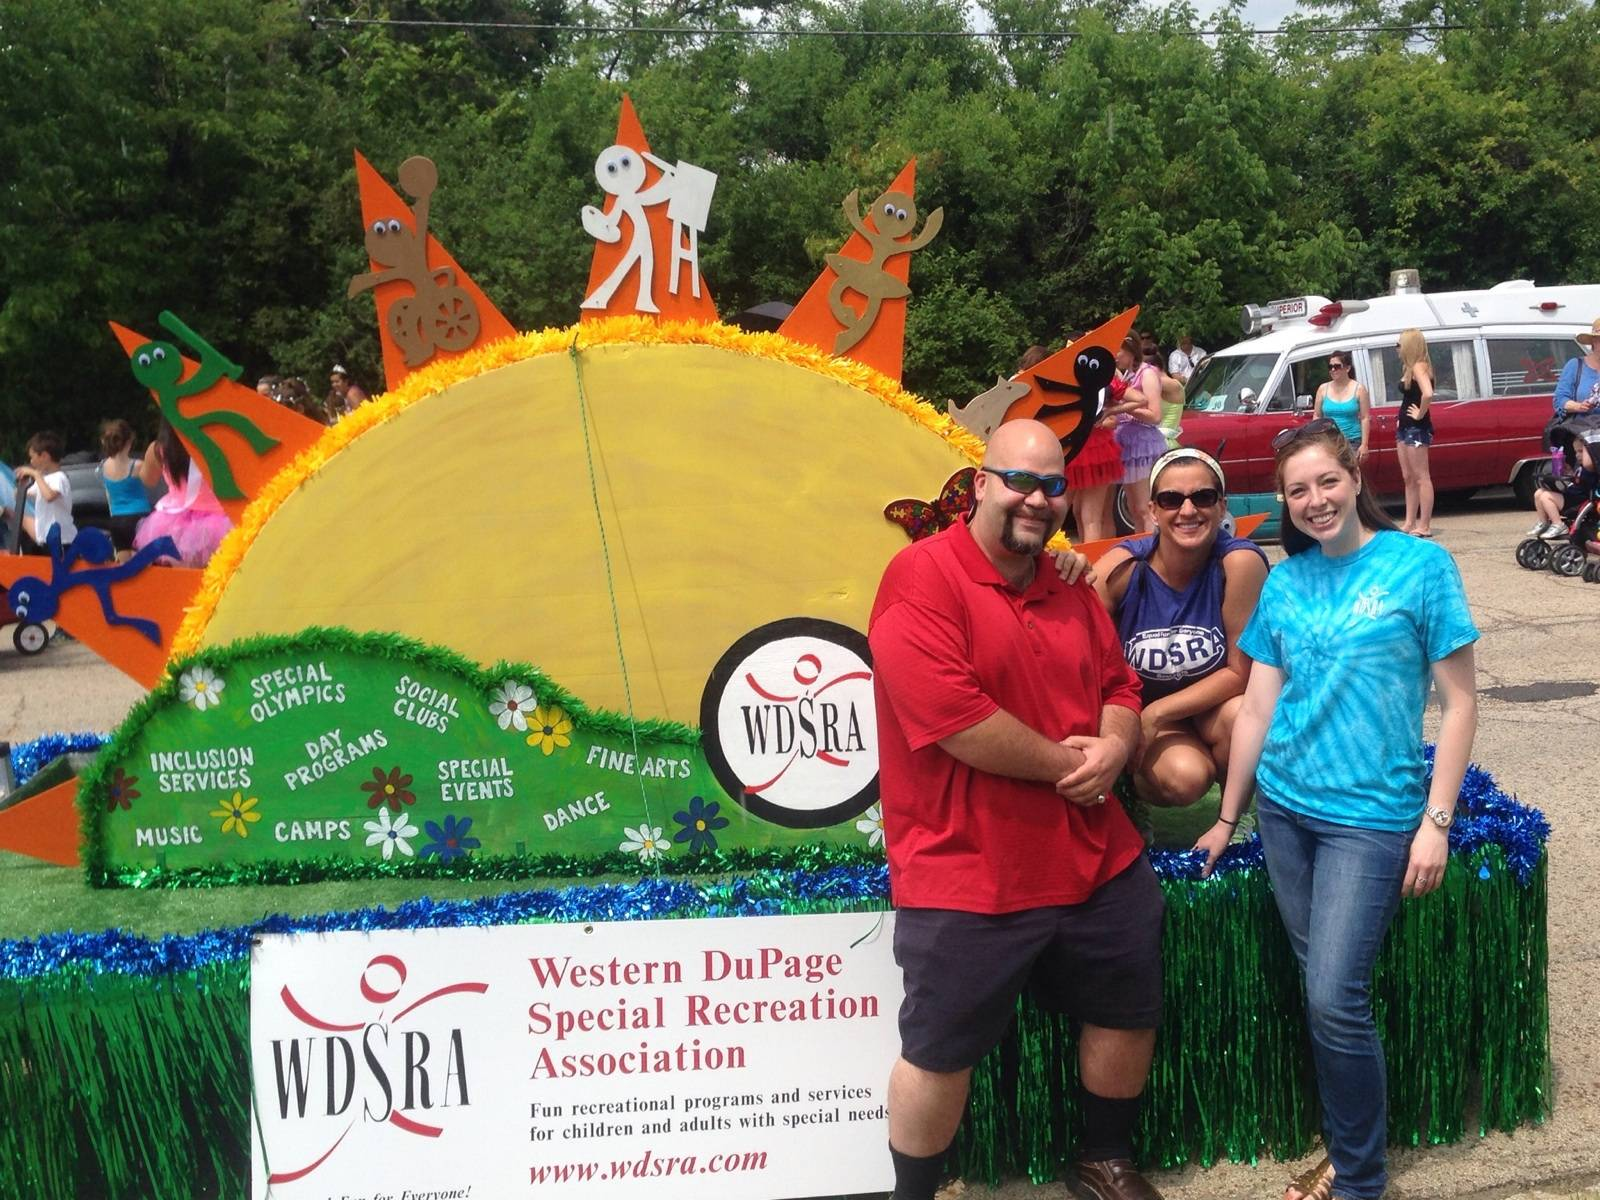 WDSRA staff and participant pose with the new parade float before the 2014 Rose Parade in Roselle, IL. Dori Napolitano